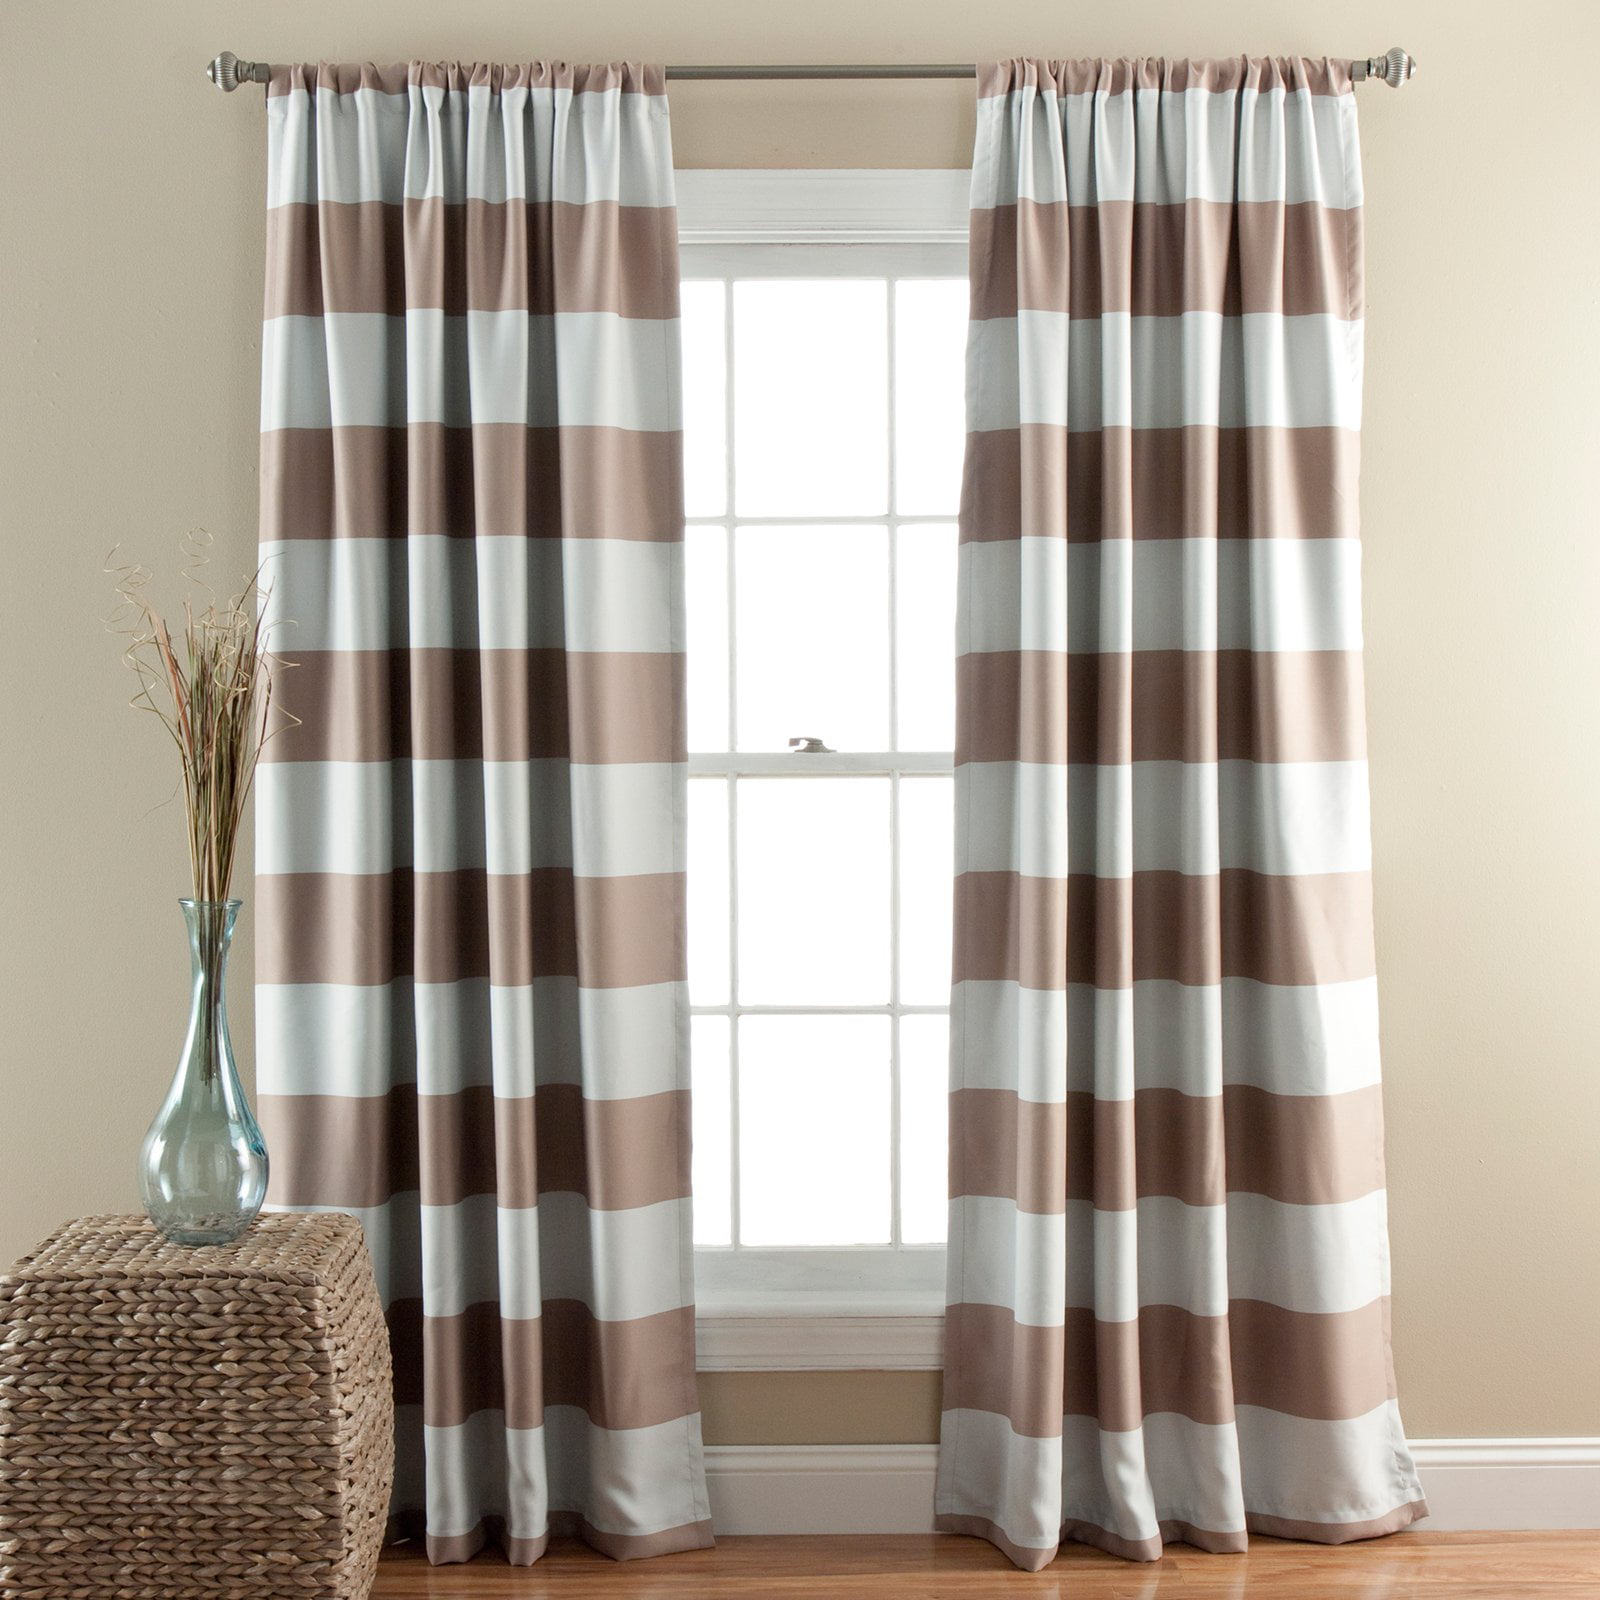 rod fashion fashionable curtains print stripe from spot stylish amazon foil voile sheer deconovo wave best for sale buy blackout striped white home top pocket